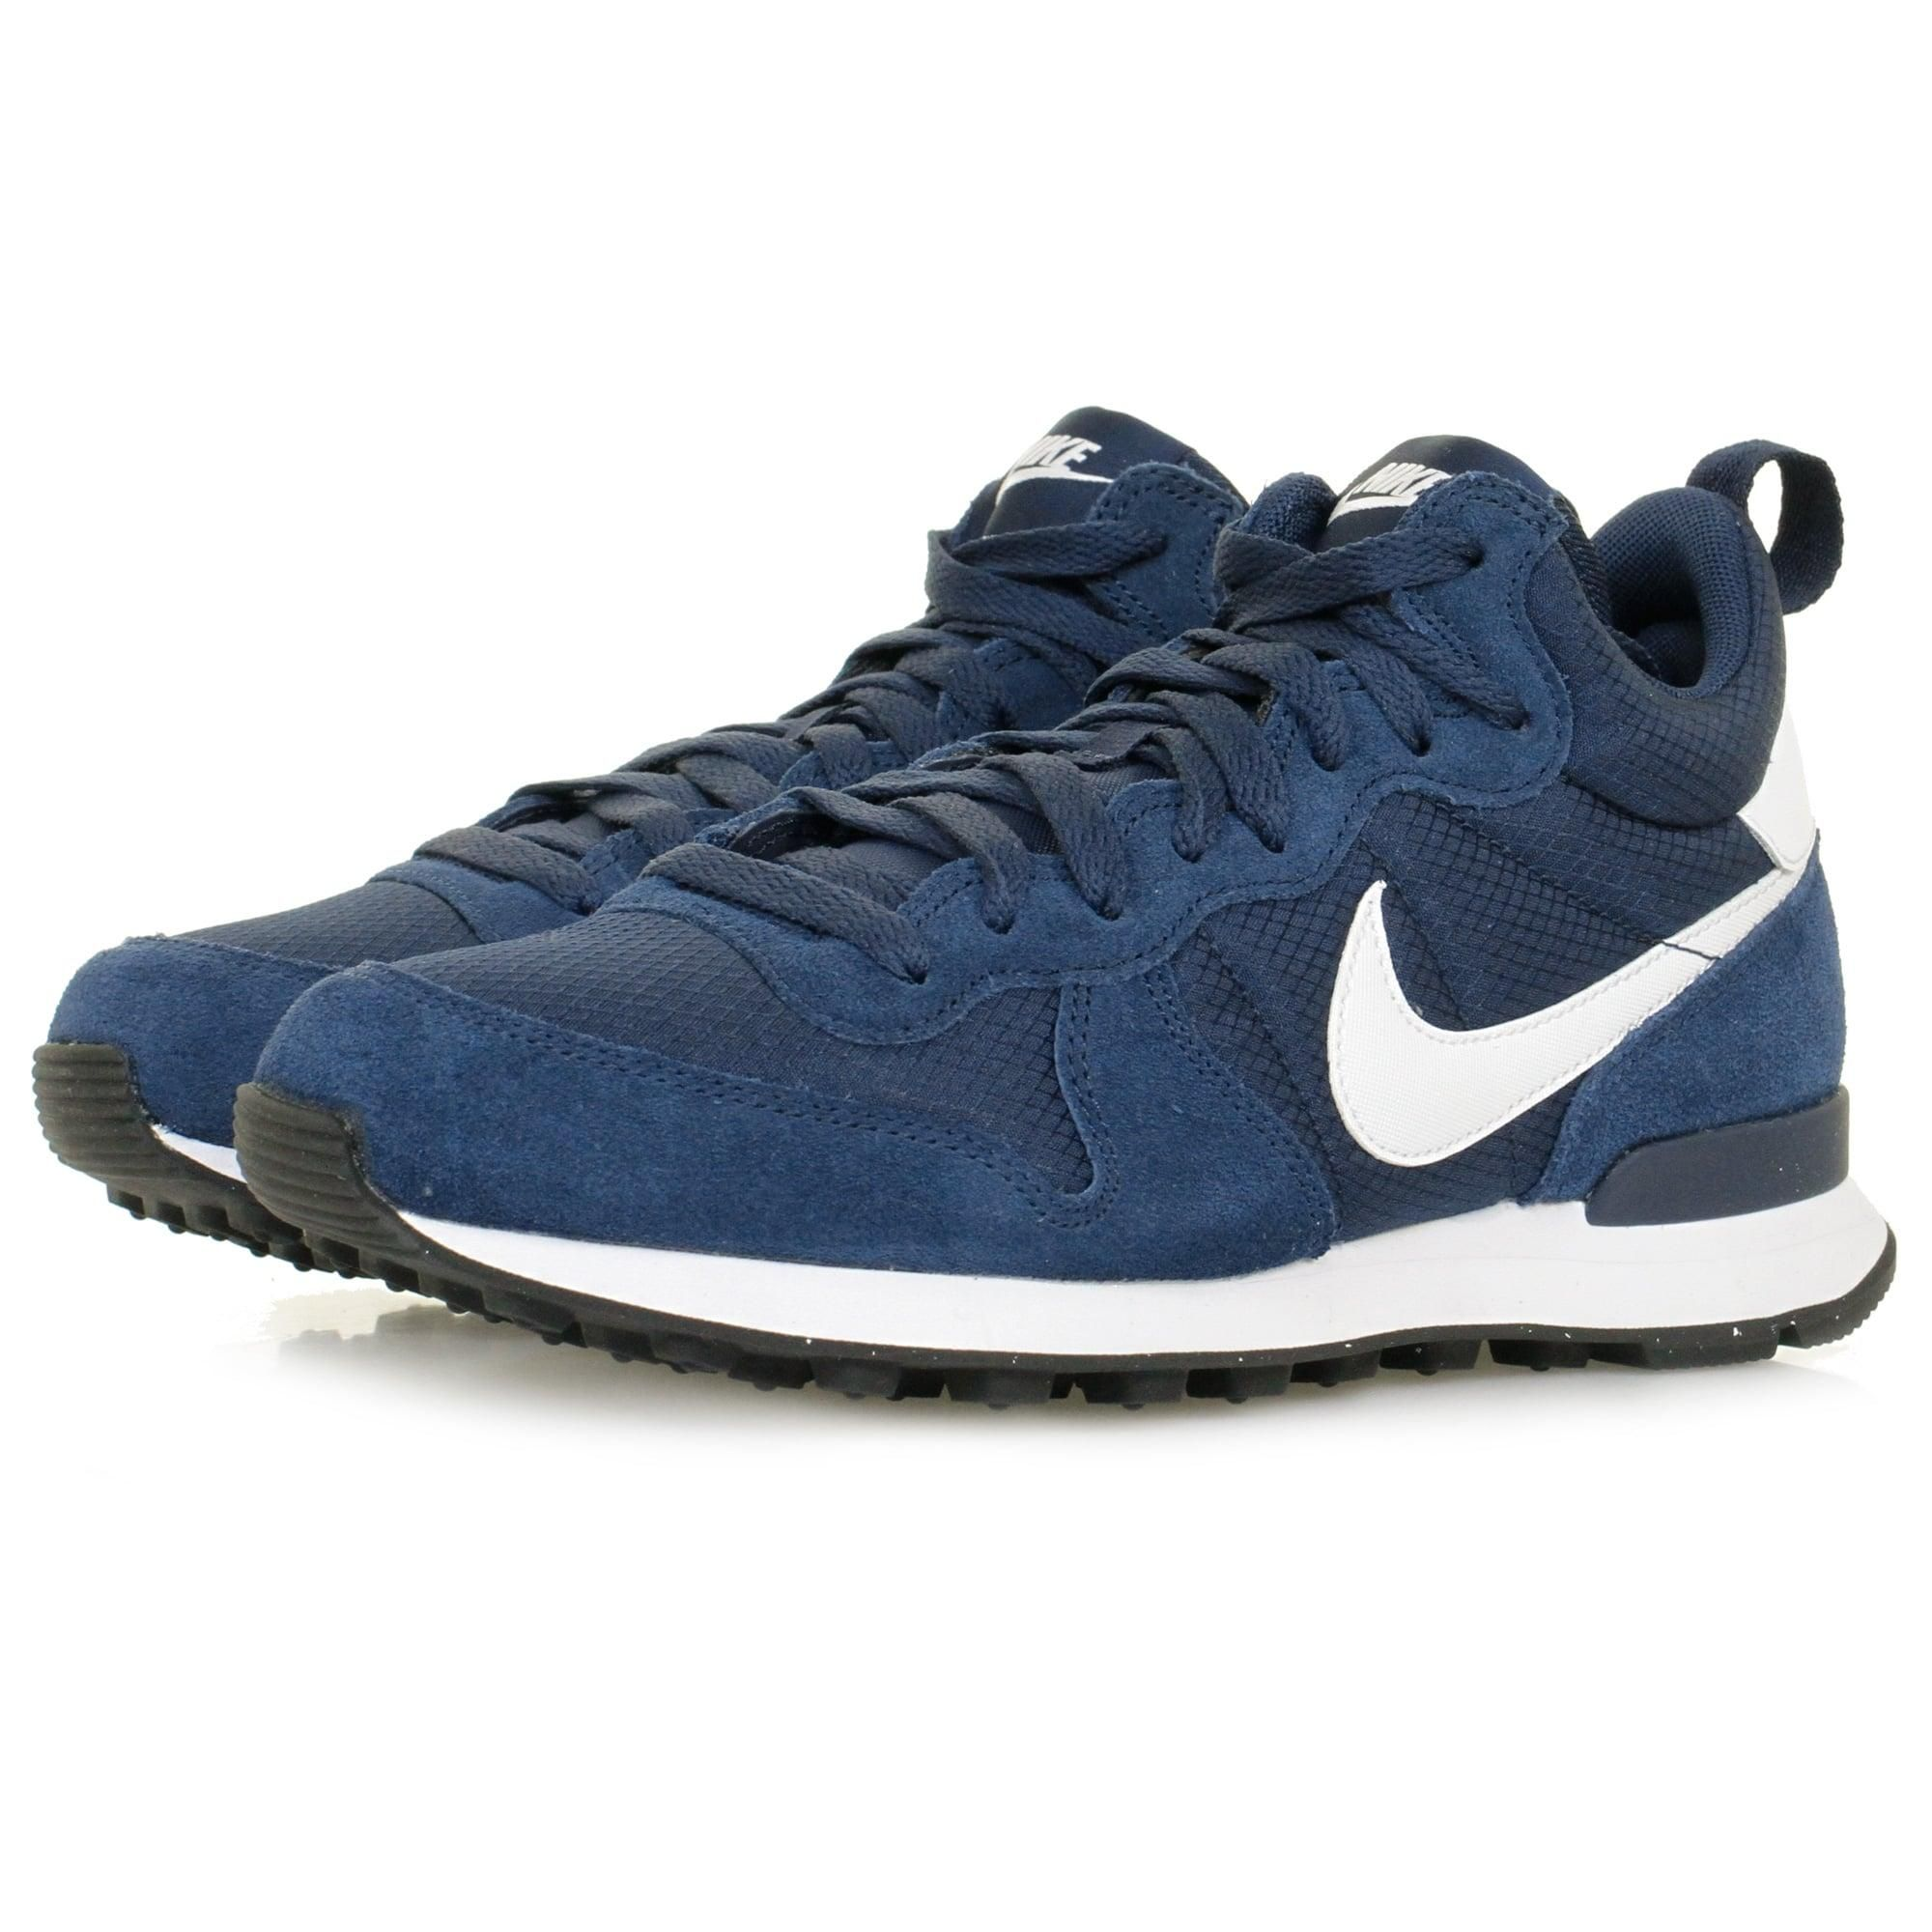 lowest price cf182 43f3c Nike   Blue Internationalist Mid Midnight Navy Shoe 859478 for Men   Lyst